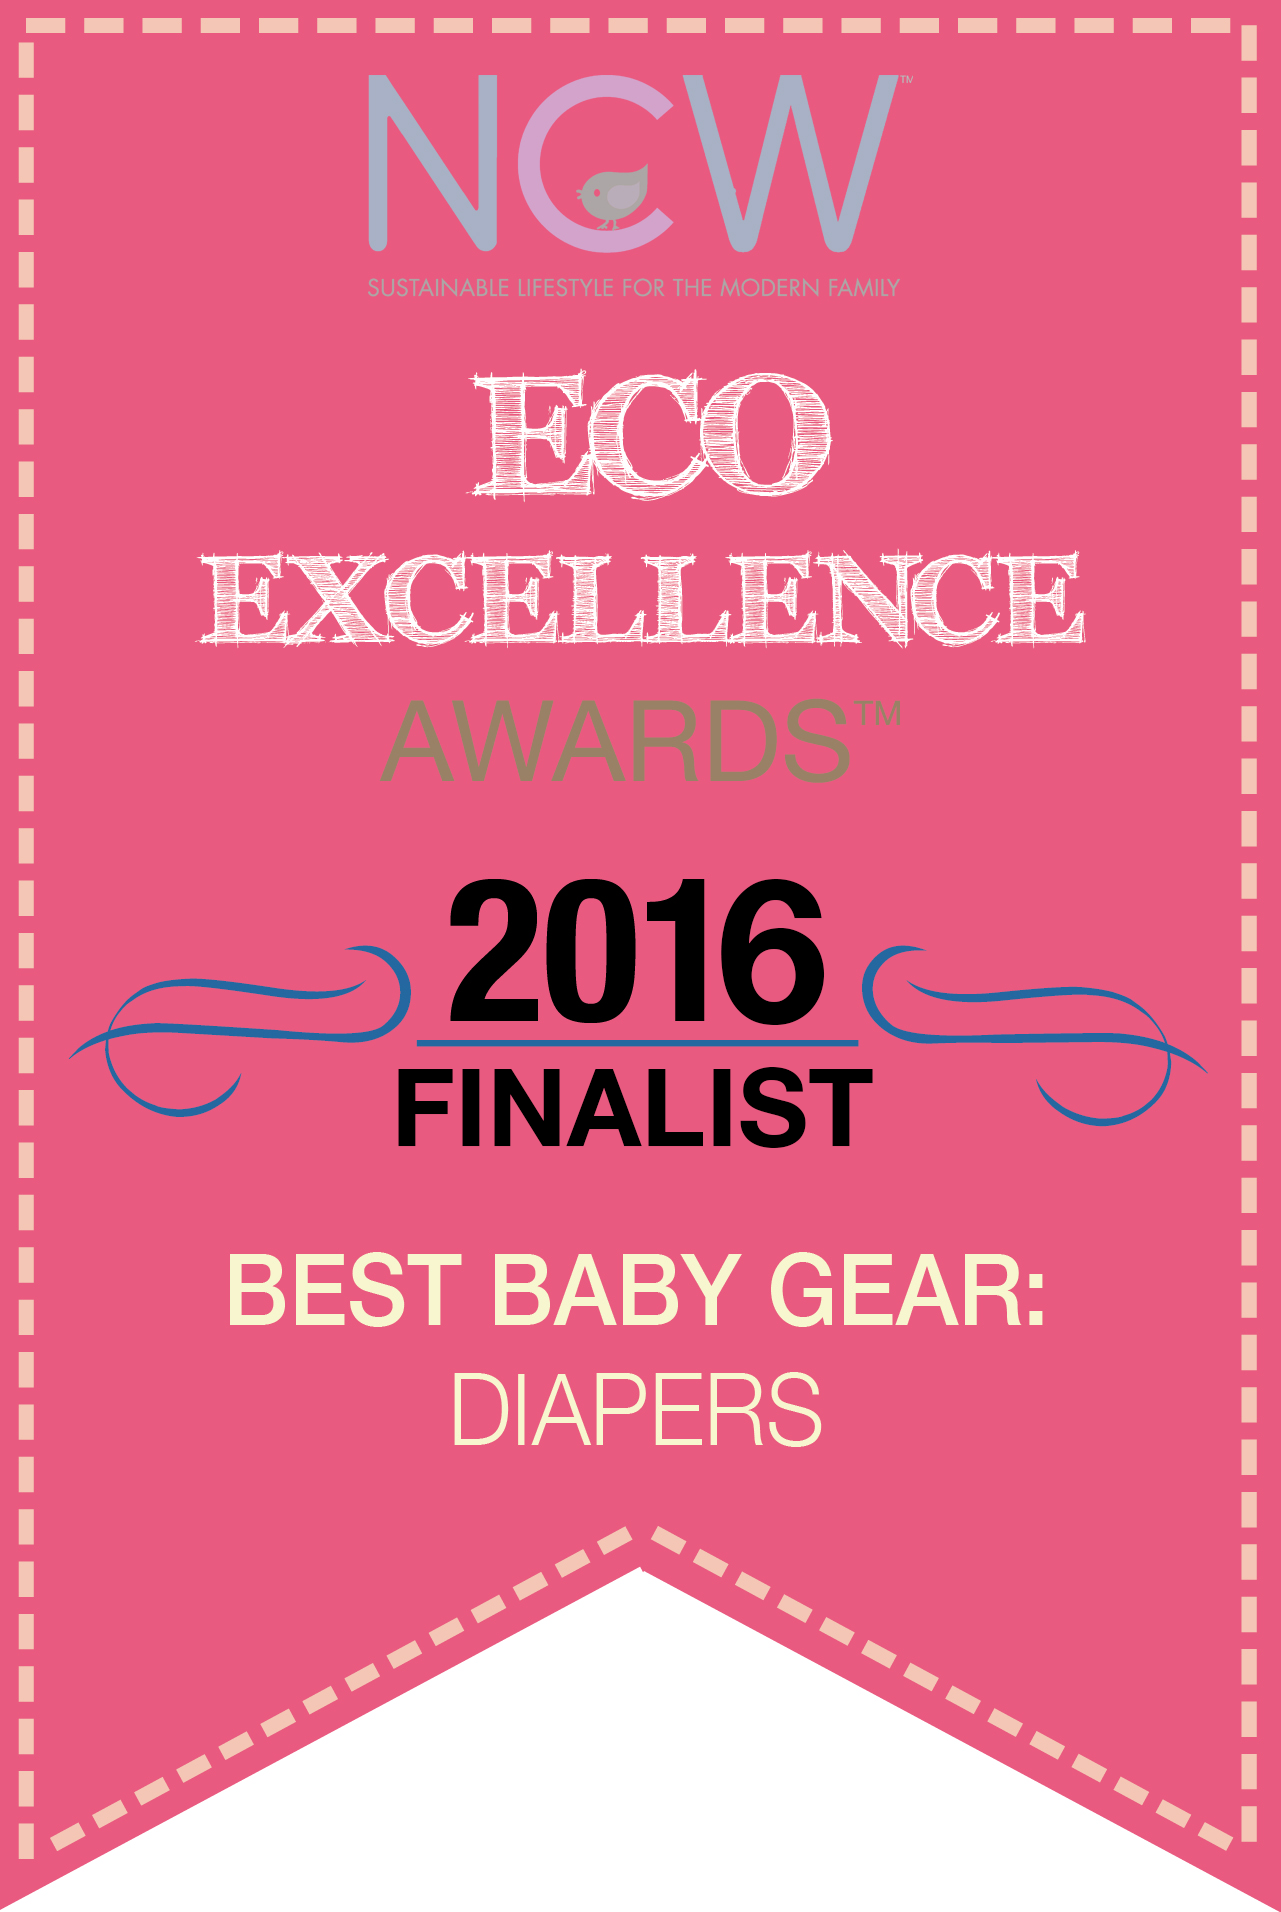 Baby Gear: Diapers - Nco Excellence Awards 2016